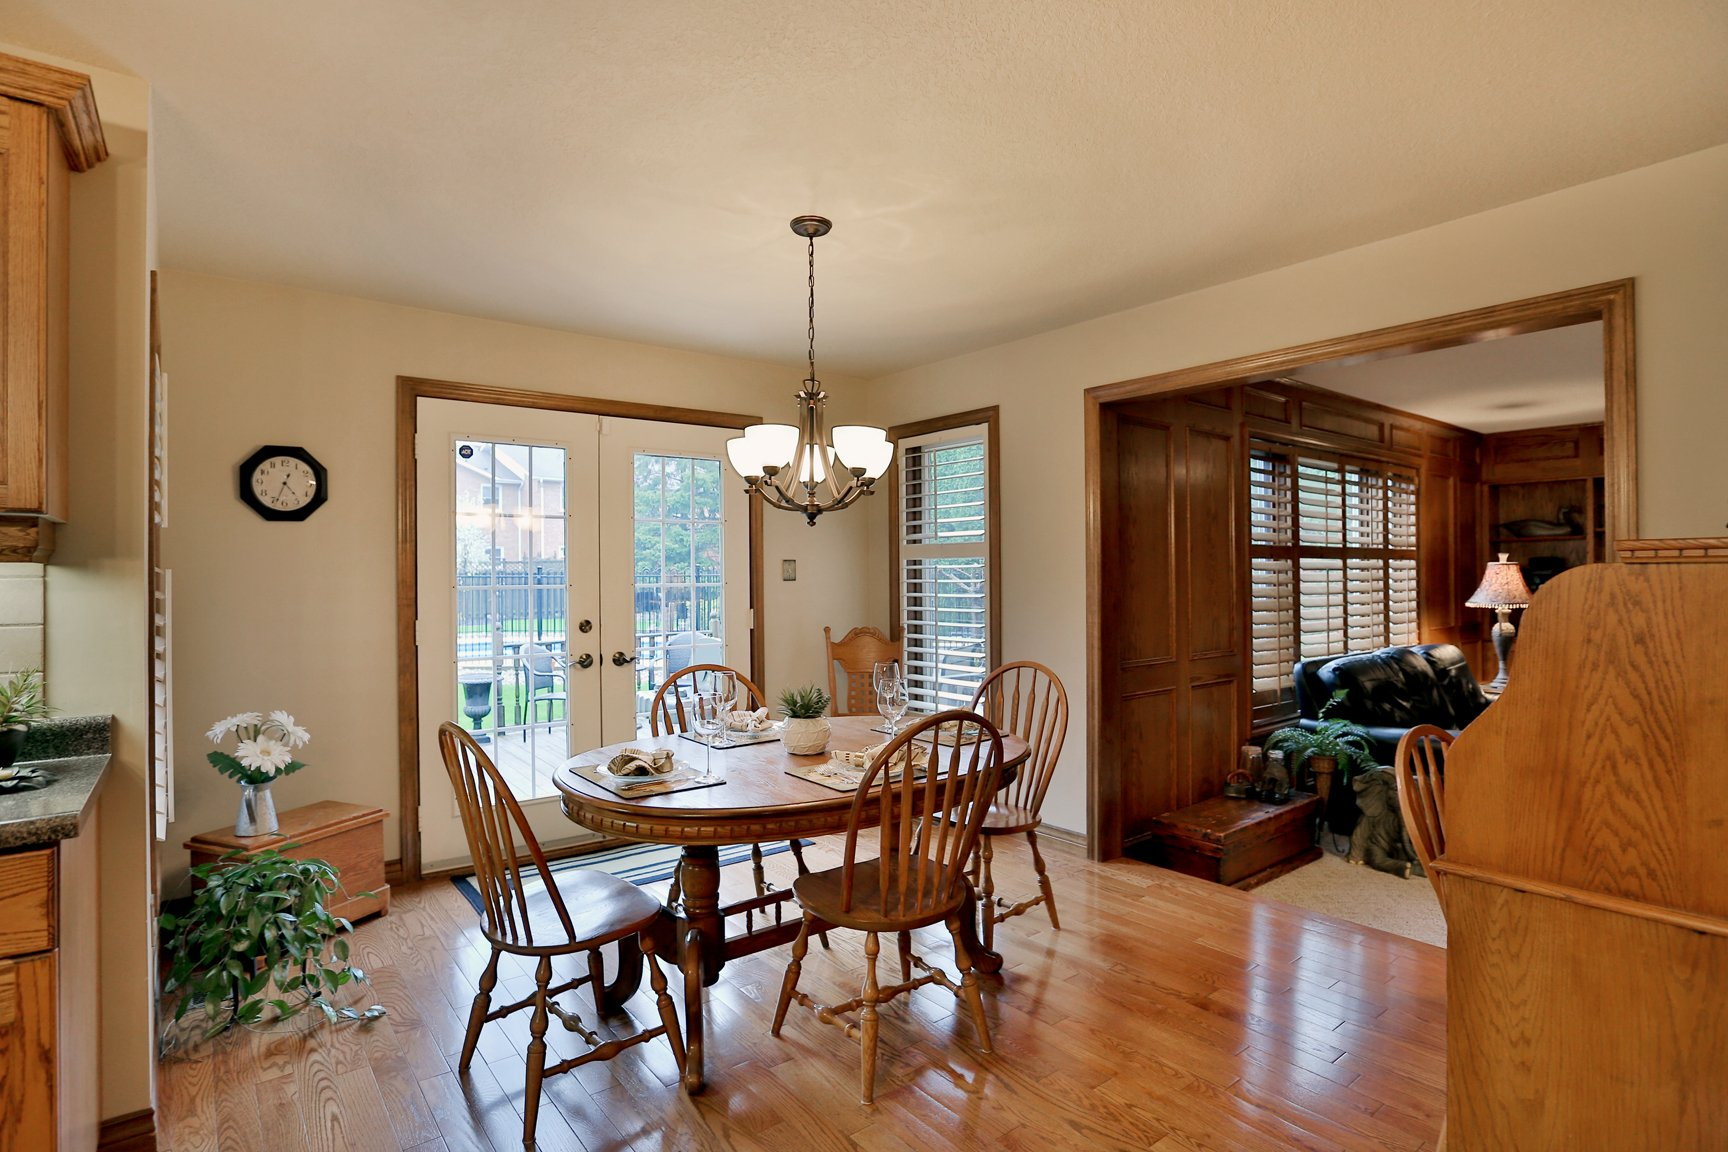 85 Galley kitchen eatin frenchdoors - Recently SOLD in Ancaster